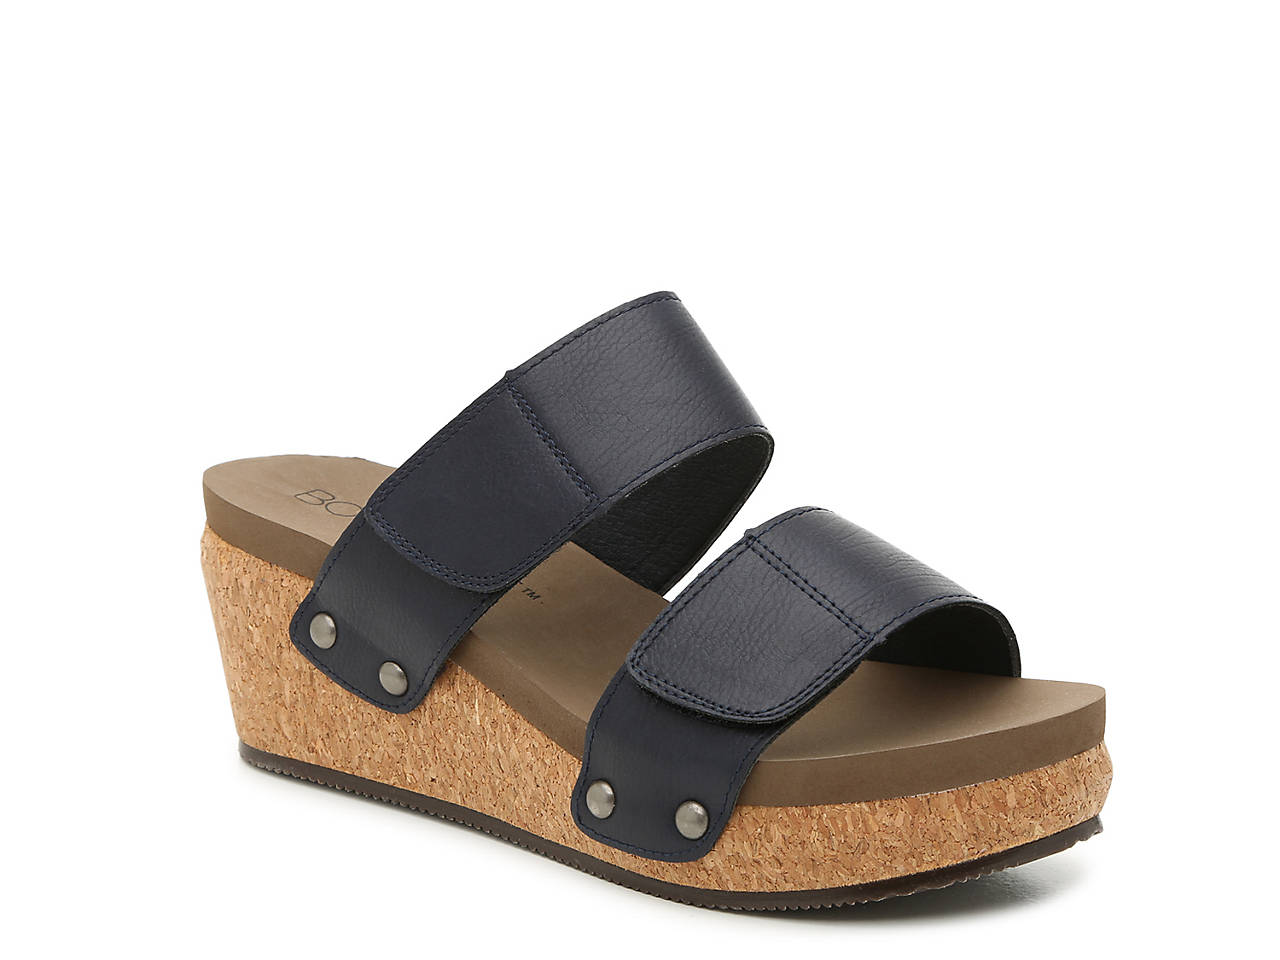 491be30d5c0 Shaw Wedge Sandal